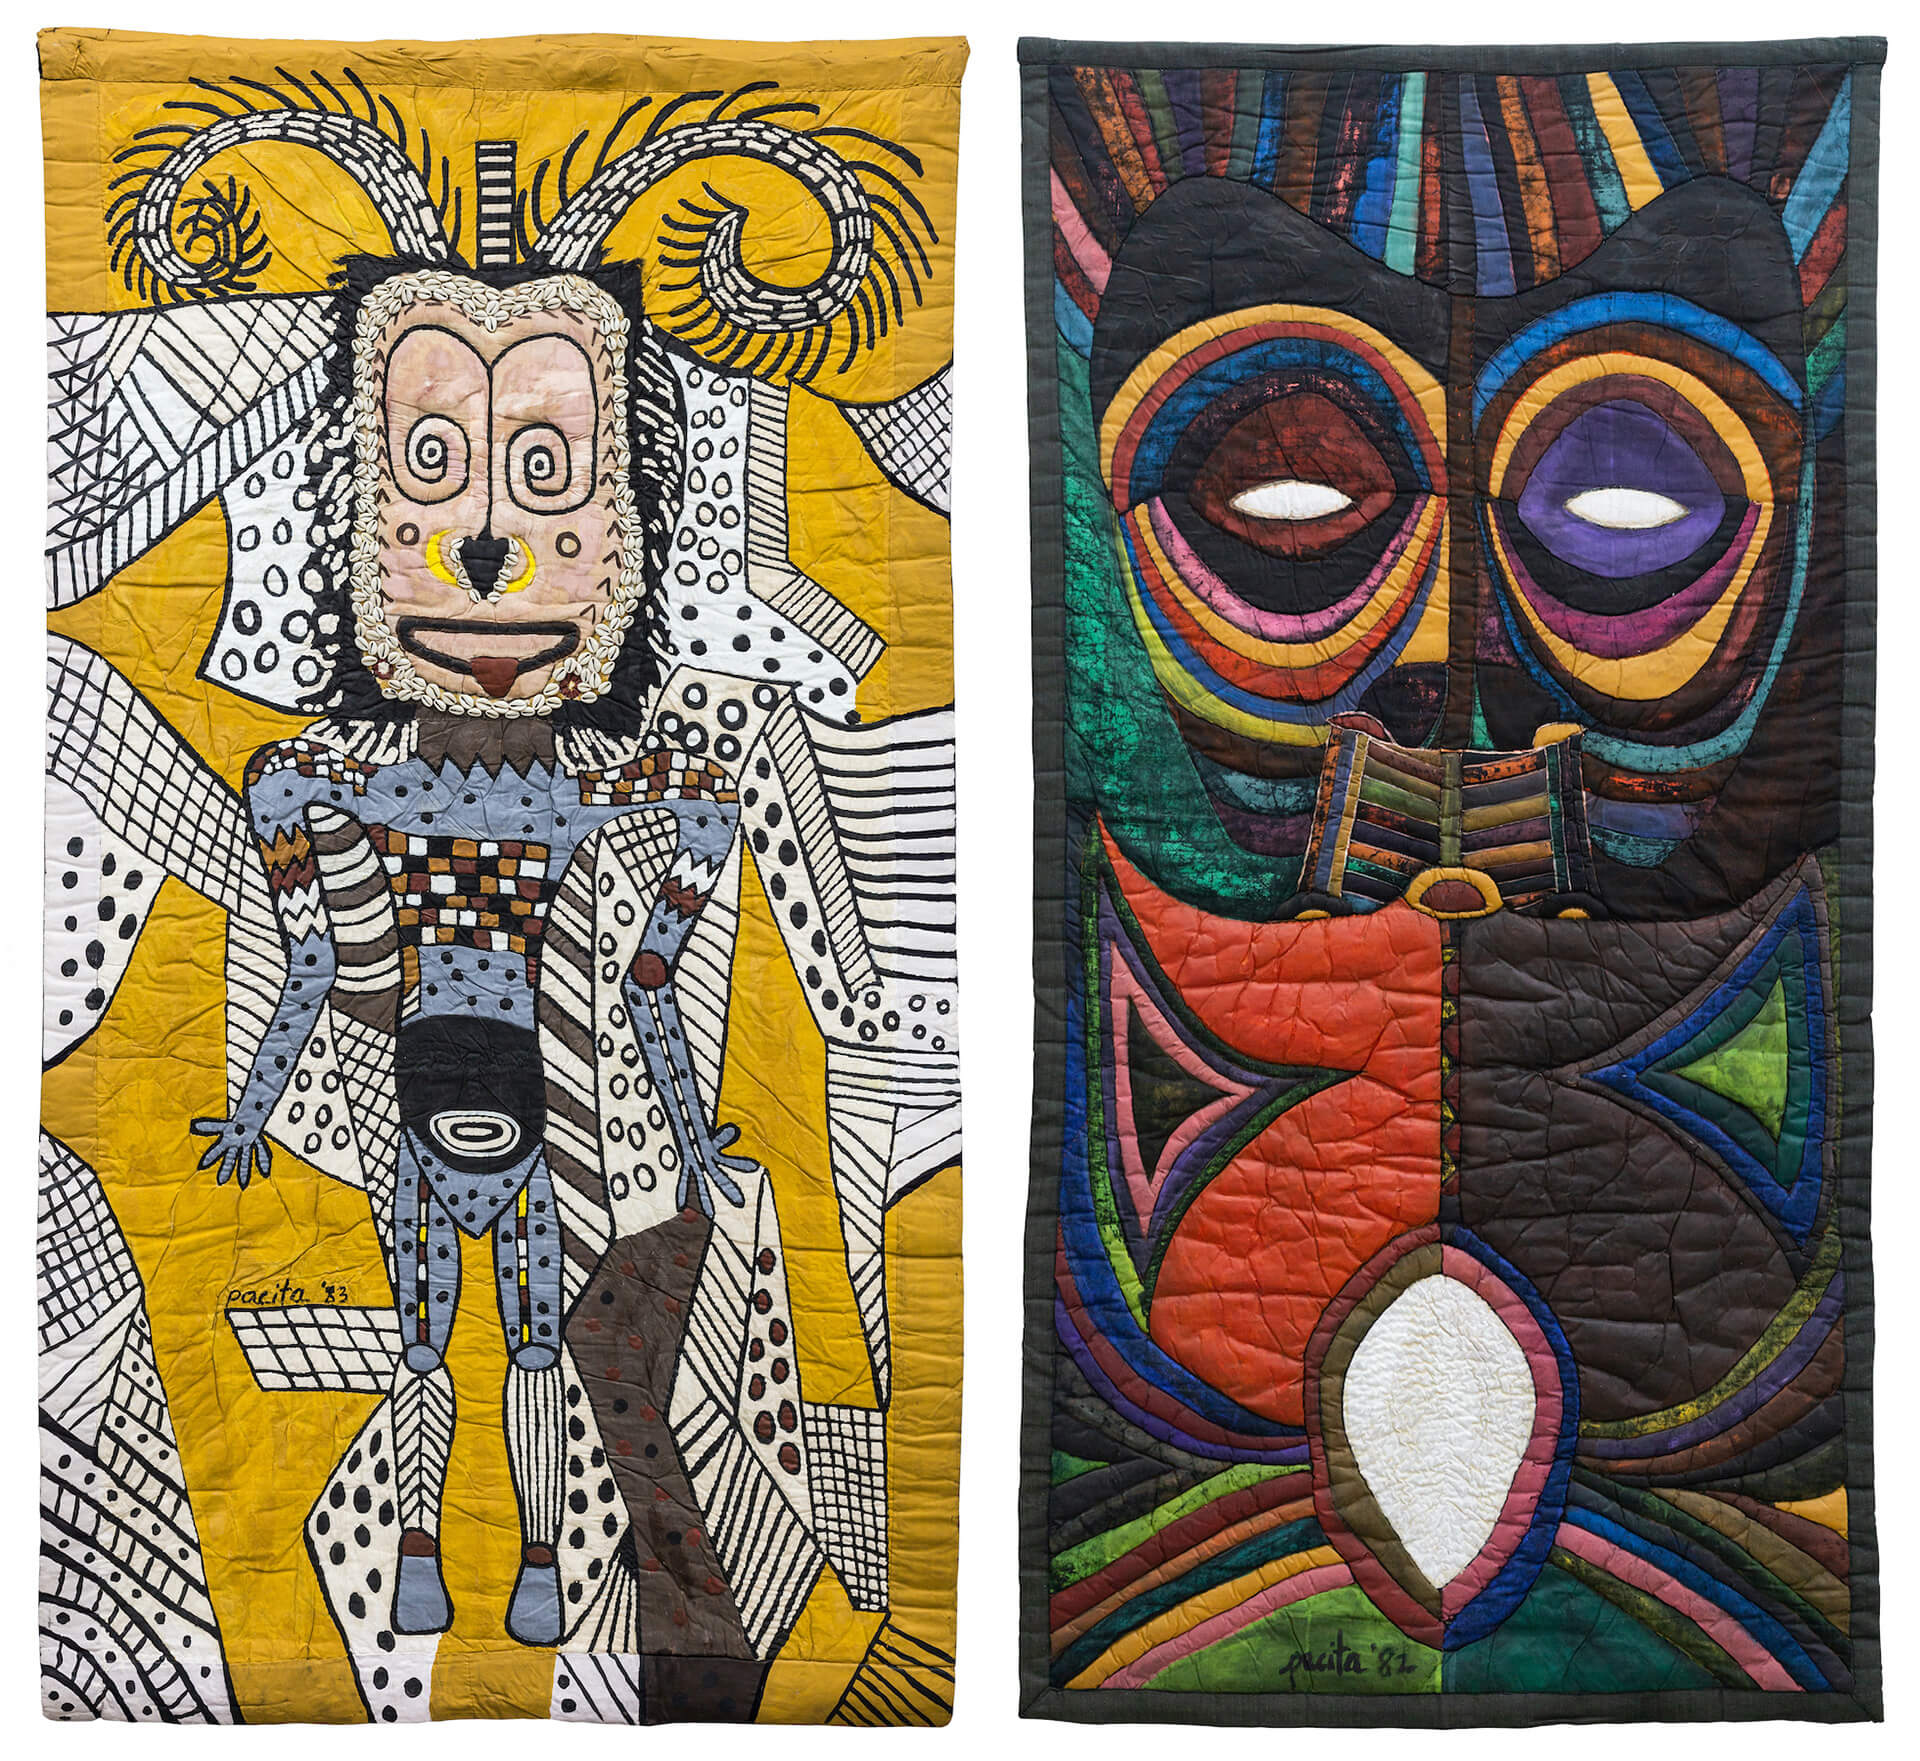 (L): Hagen Man by Pacita Abad and (R): Omdurman by Pacita Abad | Pacita Abad | Art Basel| STIRworld